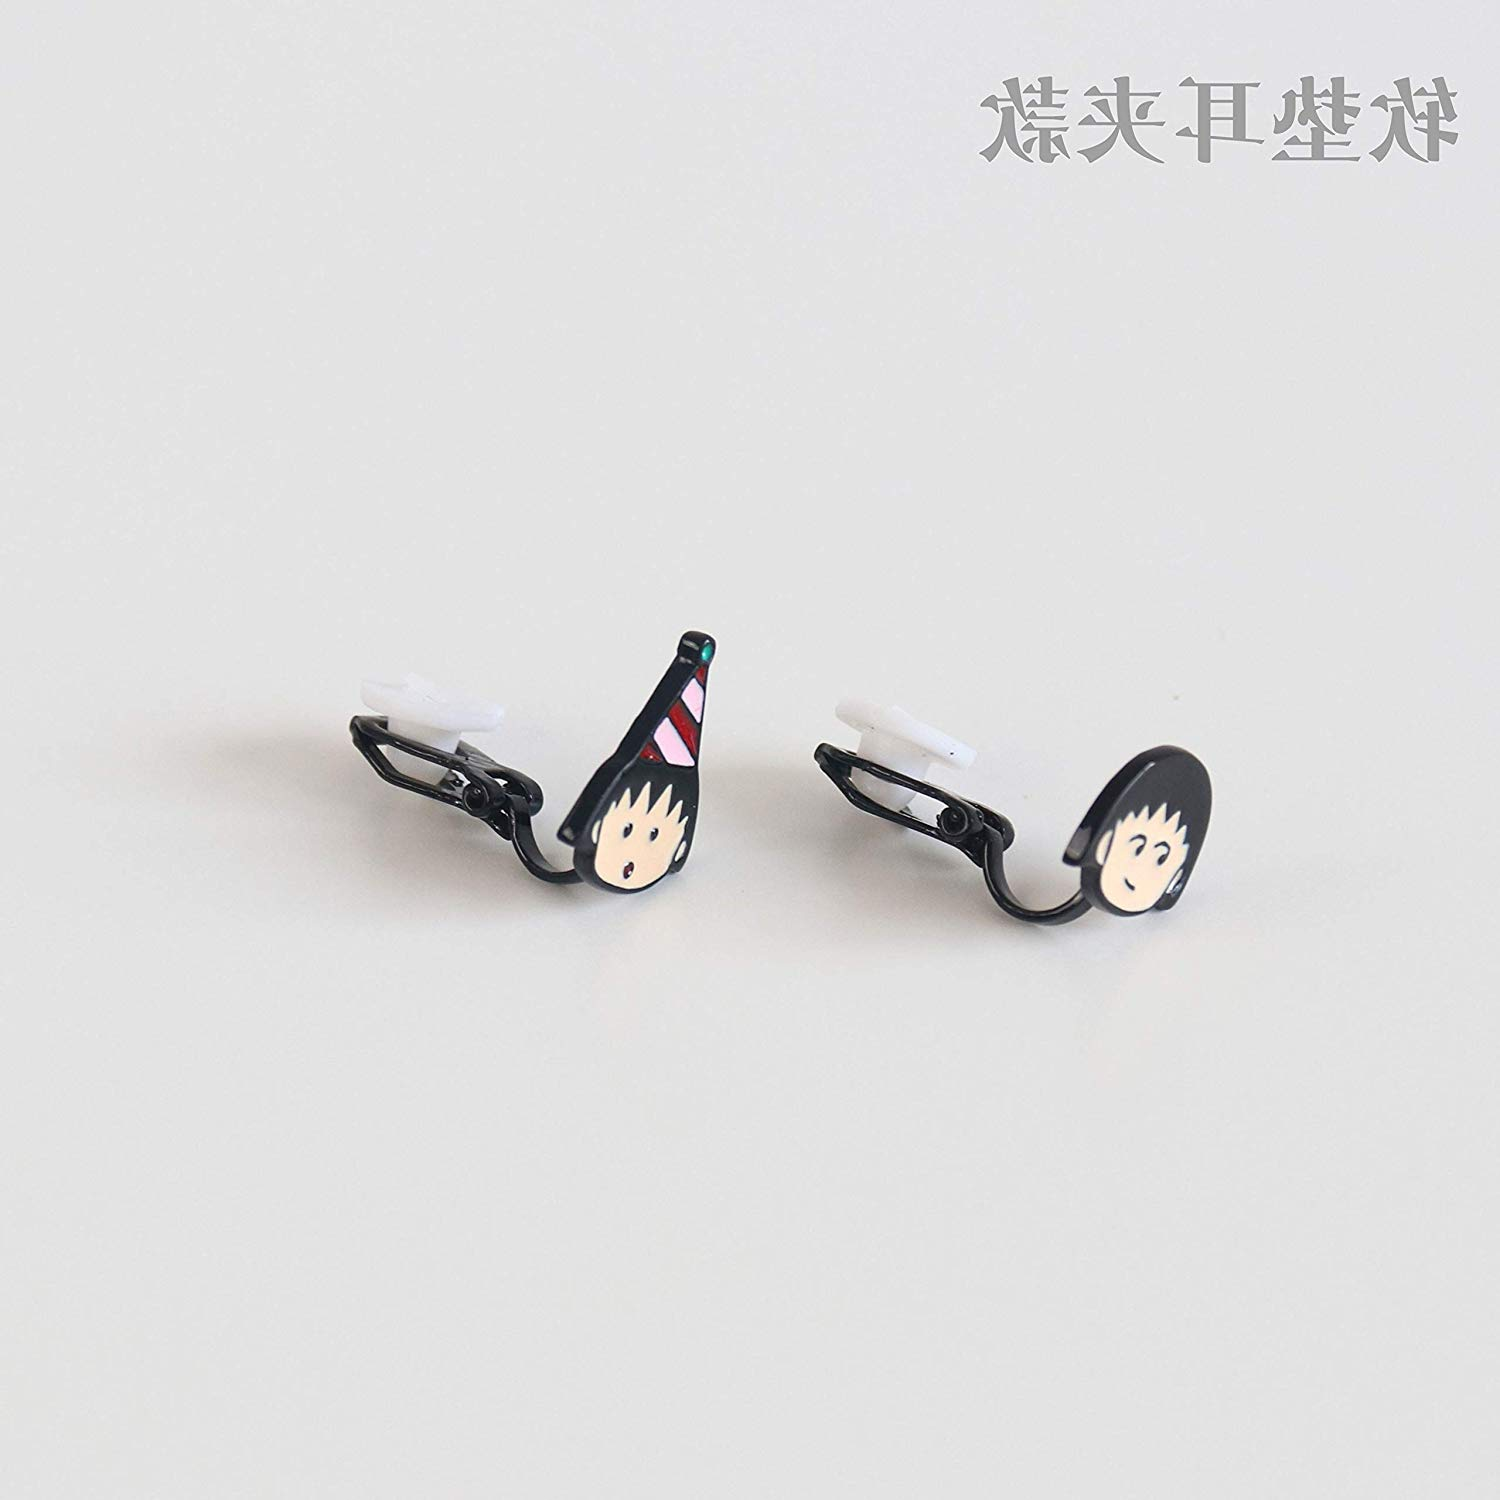 2018 Cute Chibi Maruko Earrings Earring Ear Dangler Clip Non Pierced Cartoon Creative Student Ornaments (no Pierced Ear Clip Models []